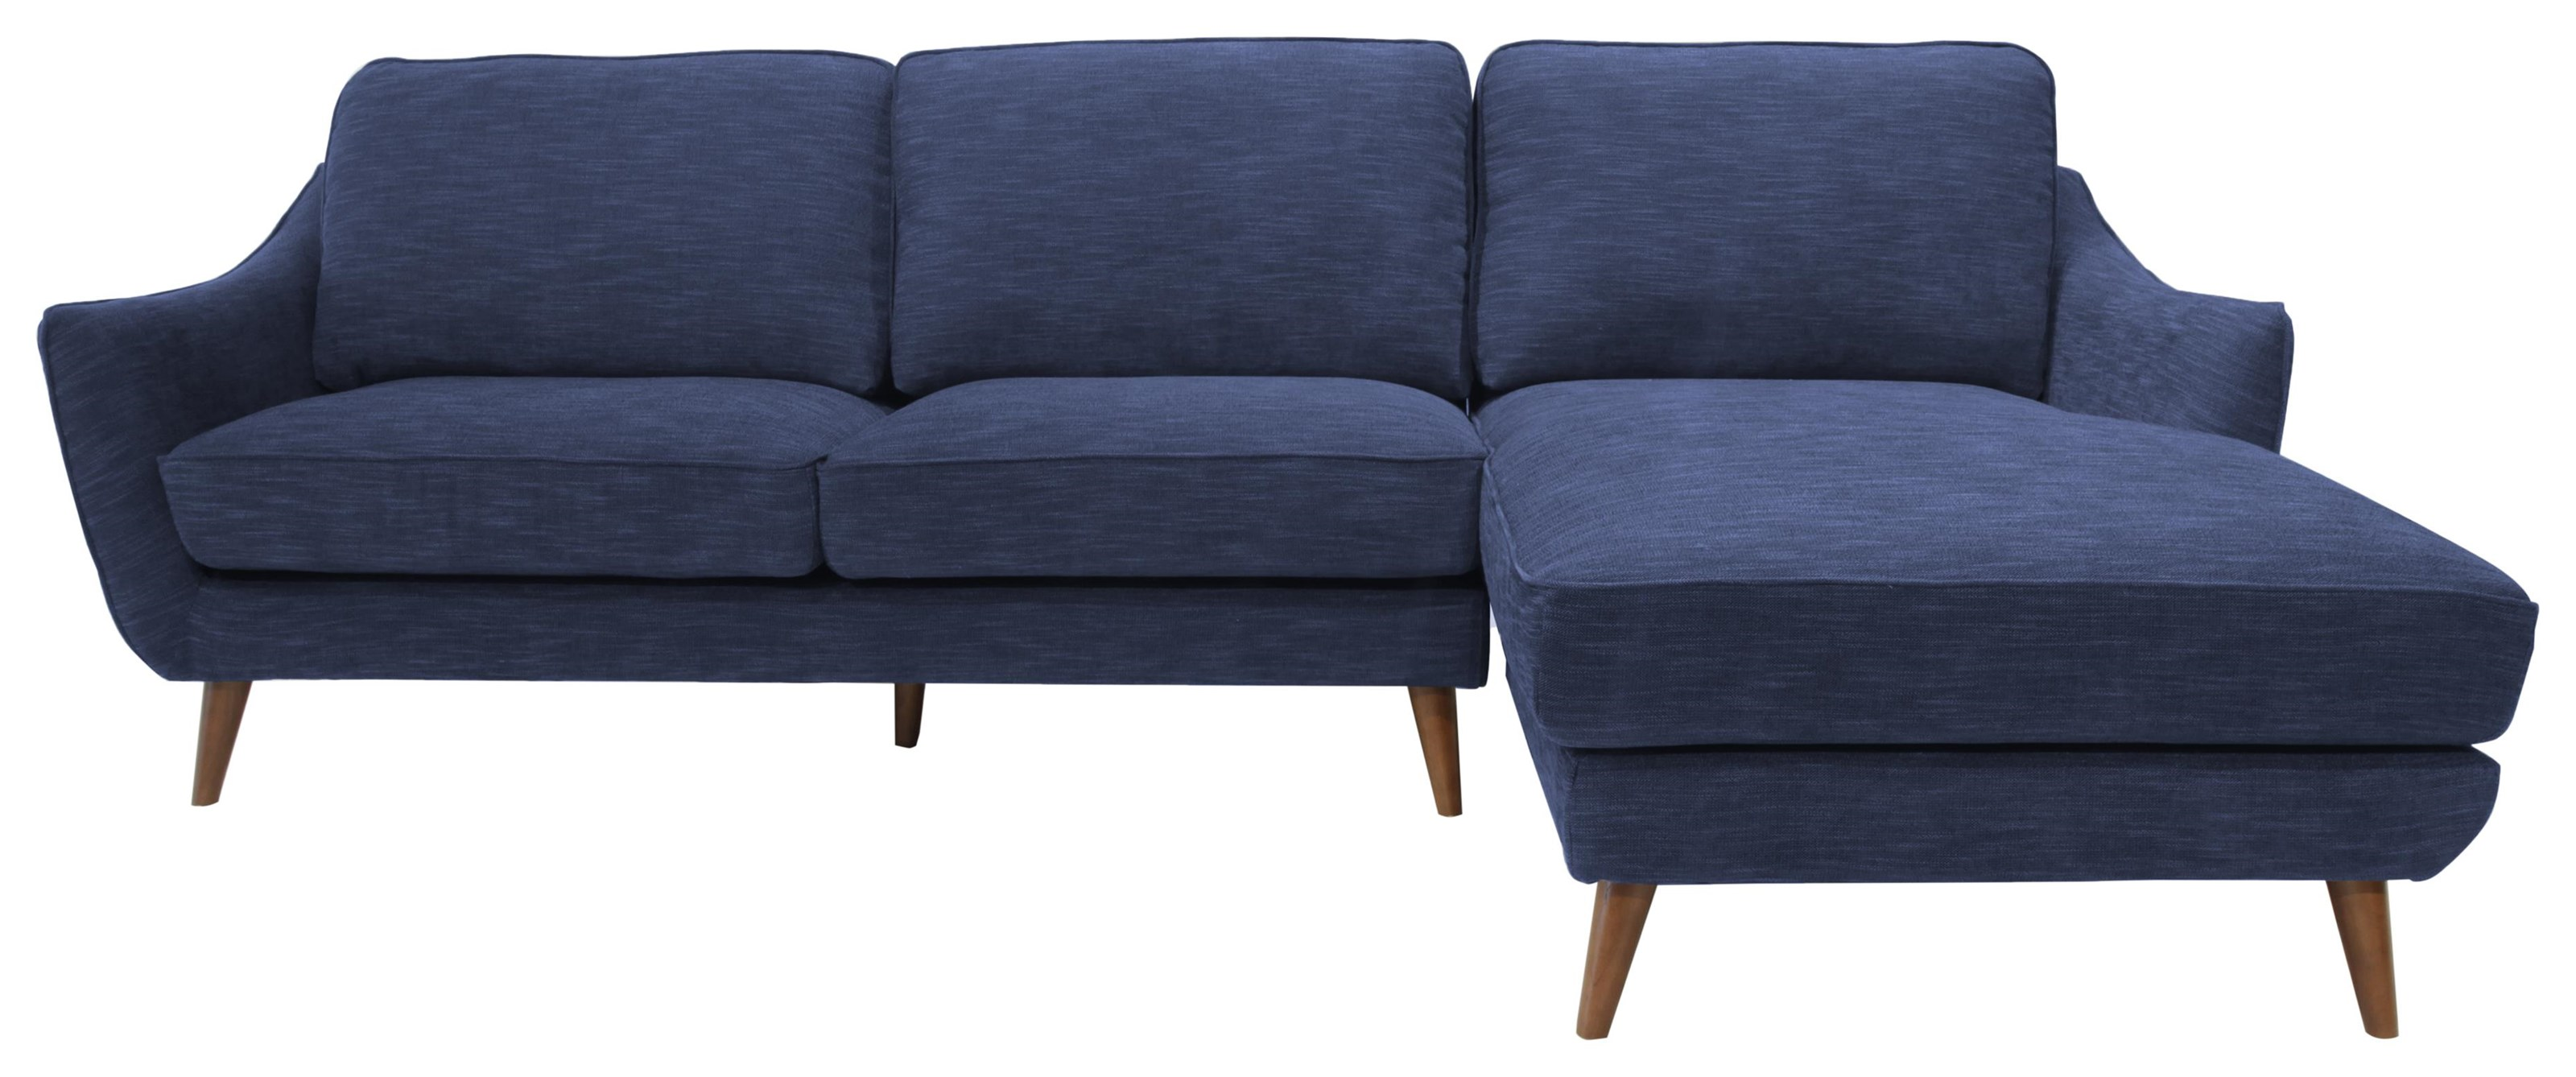 Olivia Sectional by Urban Chic at Red Knot